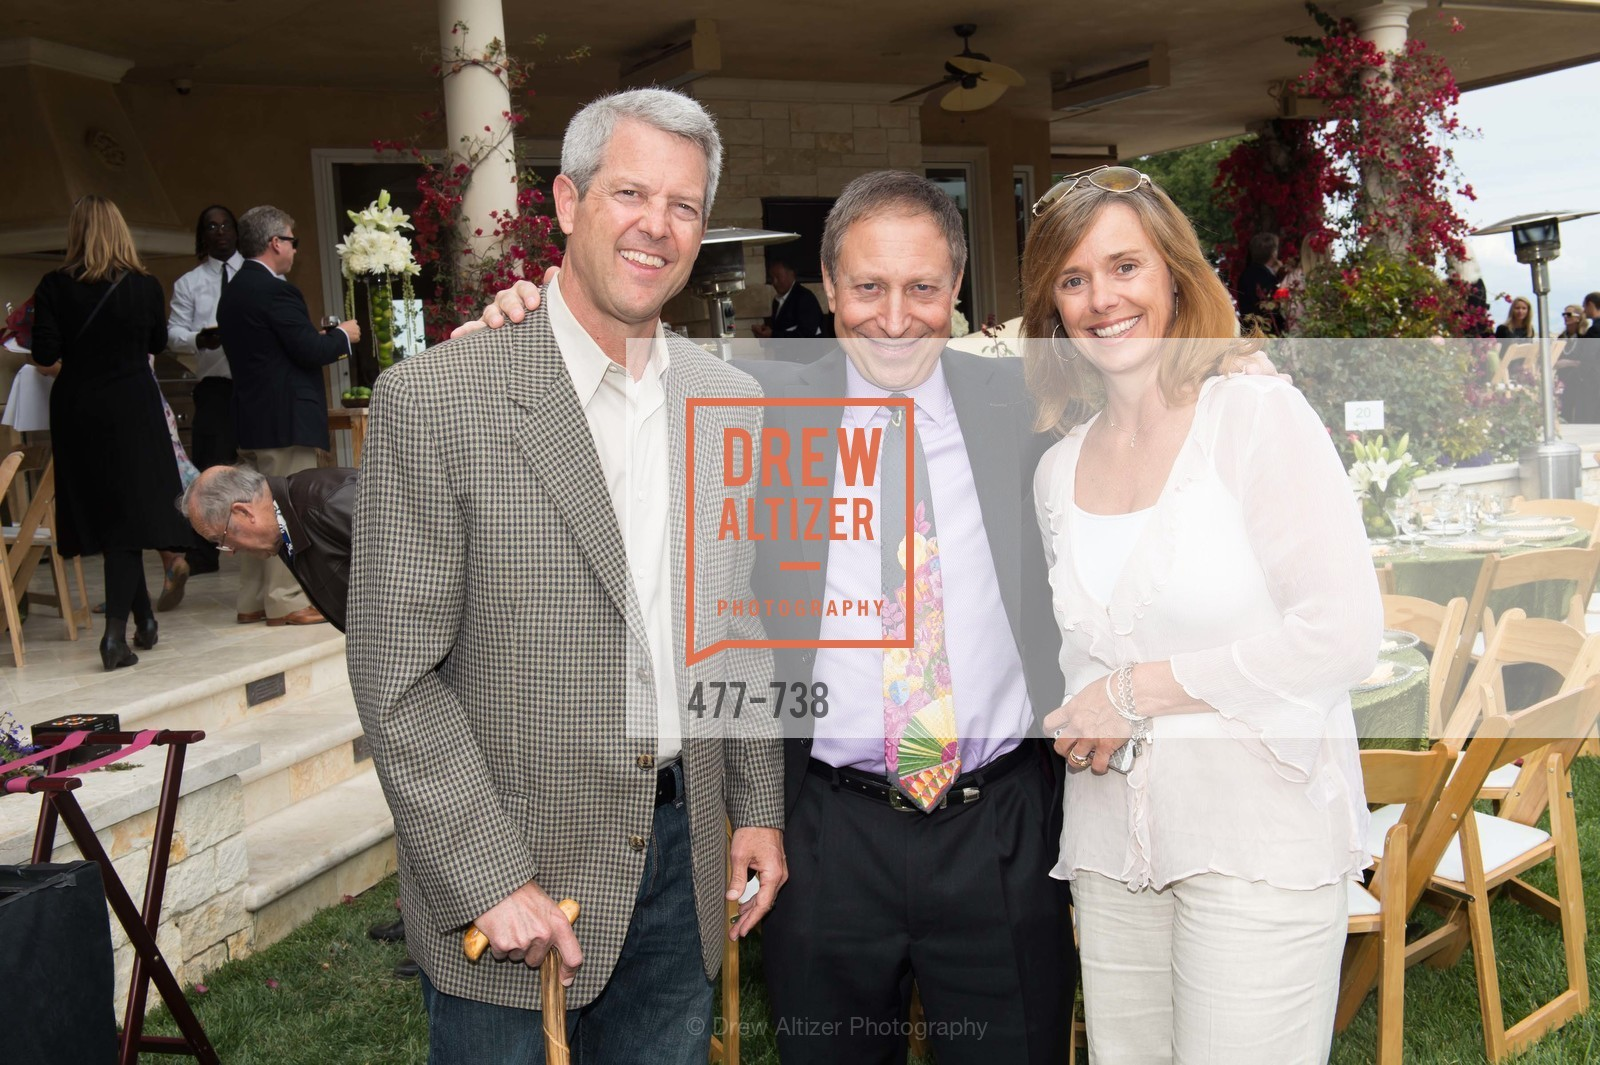 Scott Athearn, Richard Horowitz, Camille Athearn, LymeAid 2015, US, May 18th, 2015,Drew Altizer, Drew Altizer Photography, full-service agency, private events, San Francisco photographer, photographer california